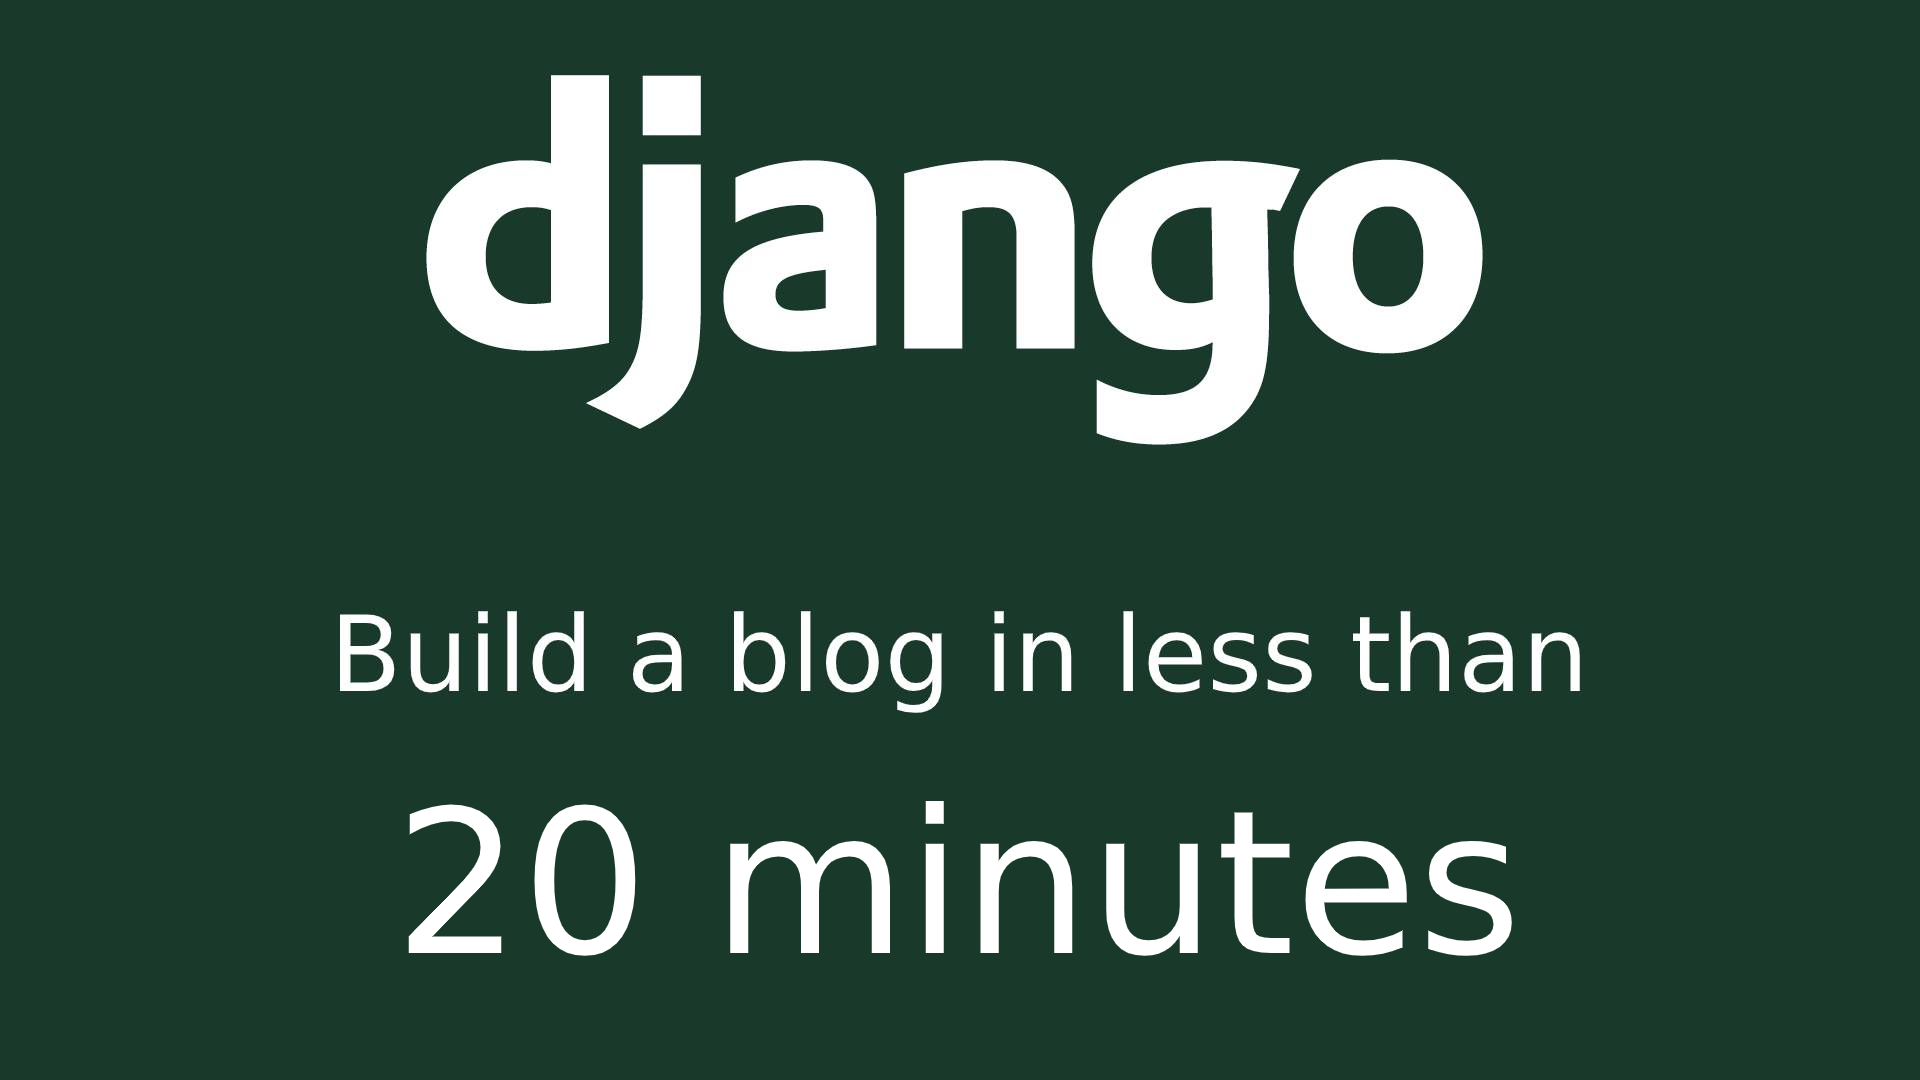 Build a simple blog using Django 3 in under 20 minutes